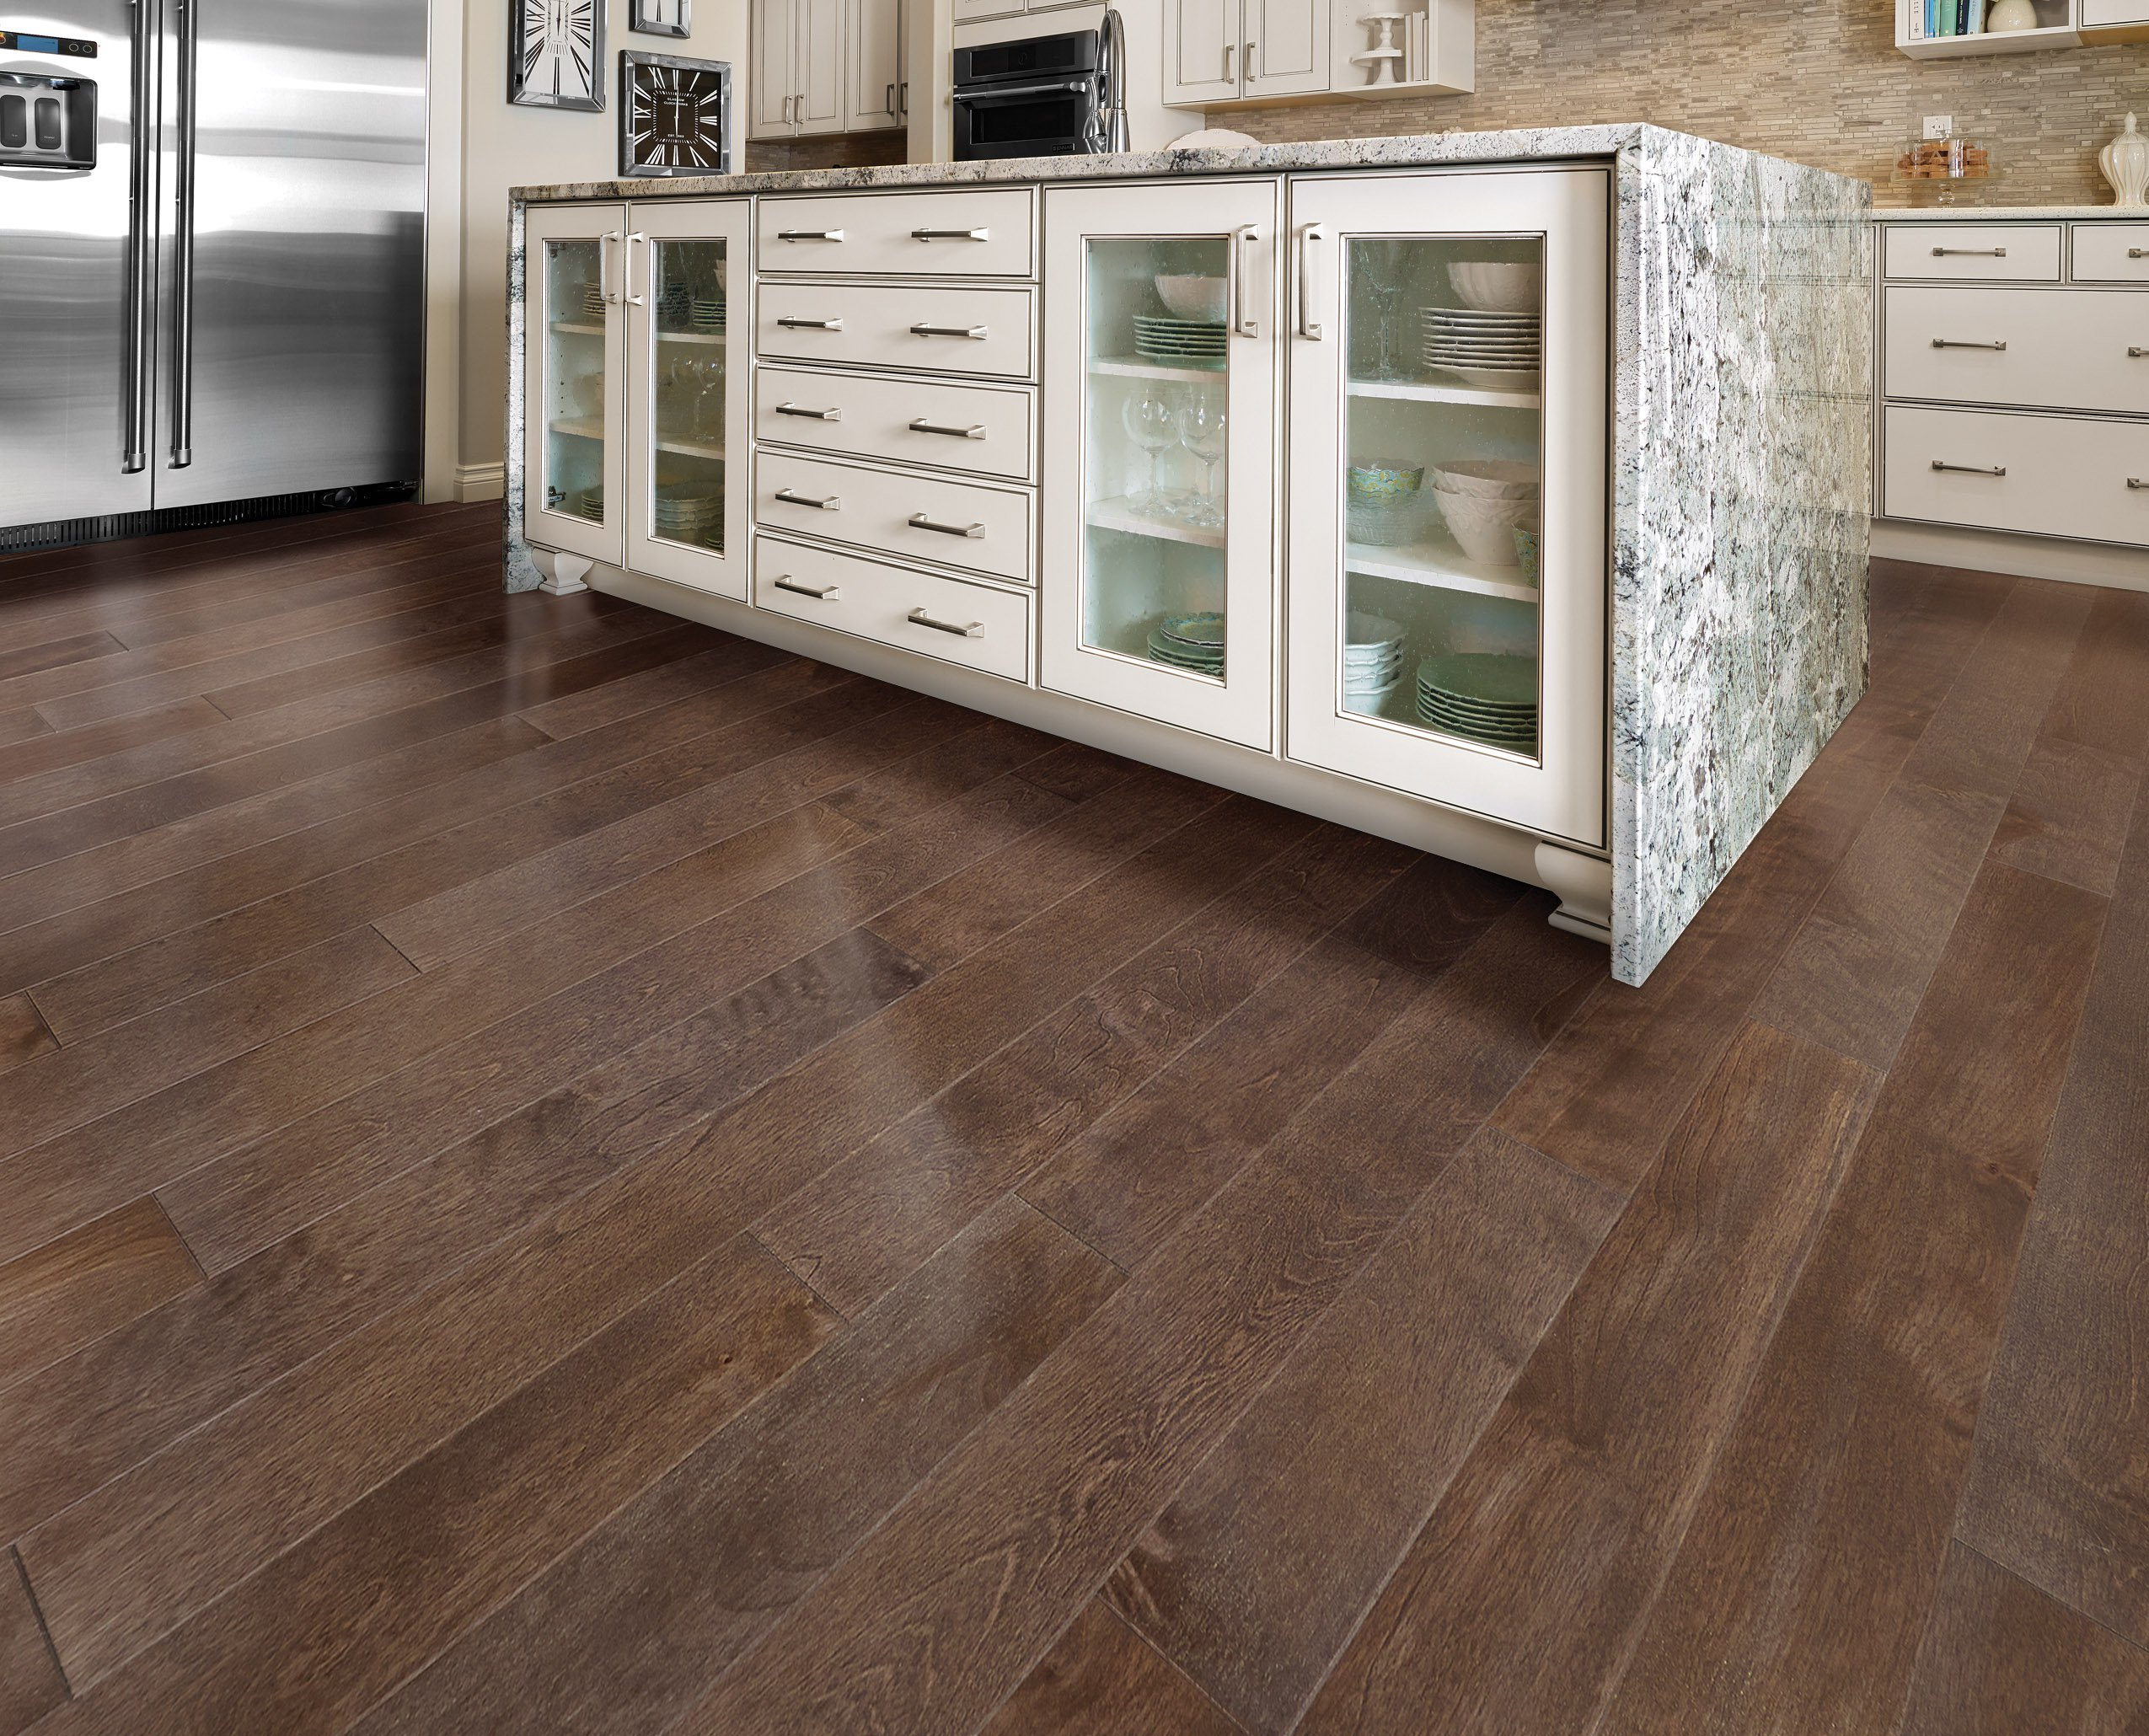 Admiration yellow birch bolton mirage hardwood floors for Mirage hardwood flooring